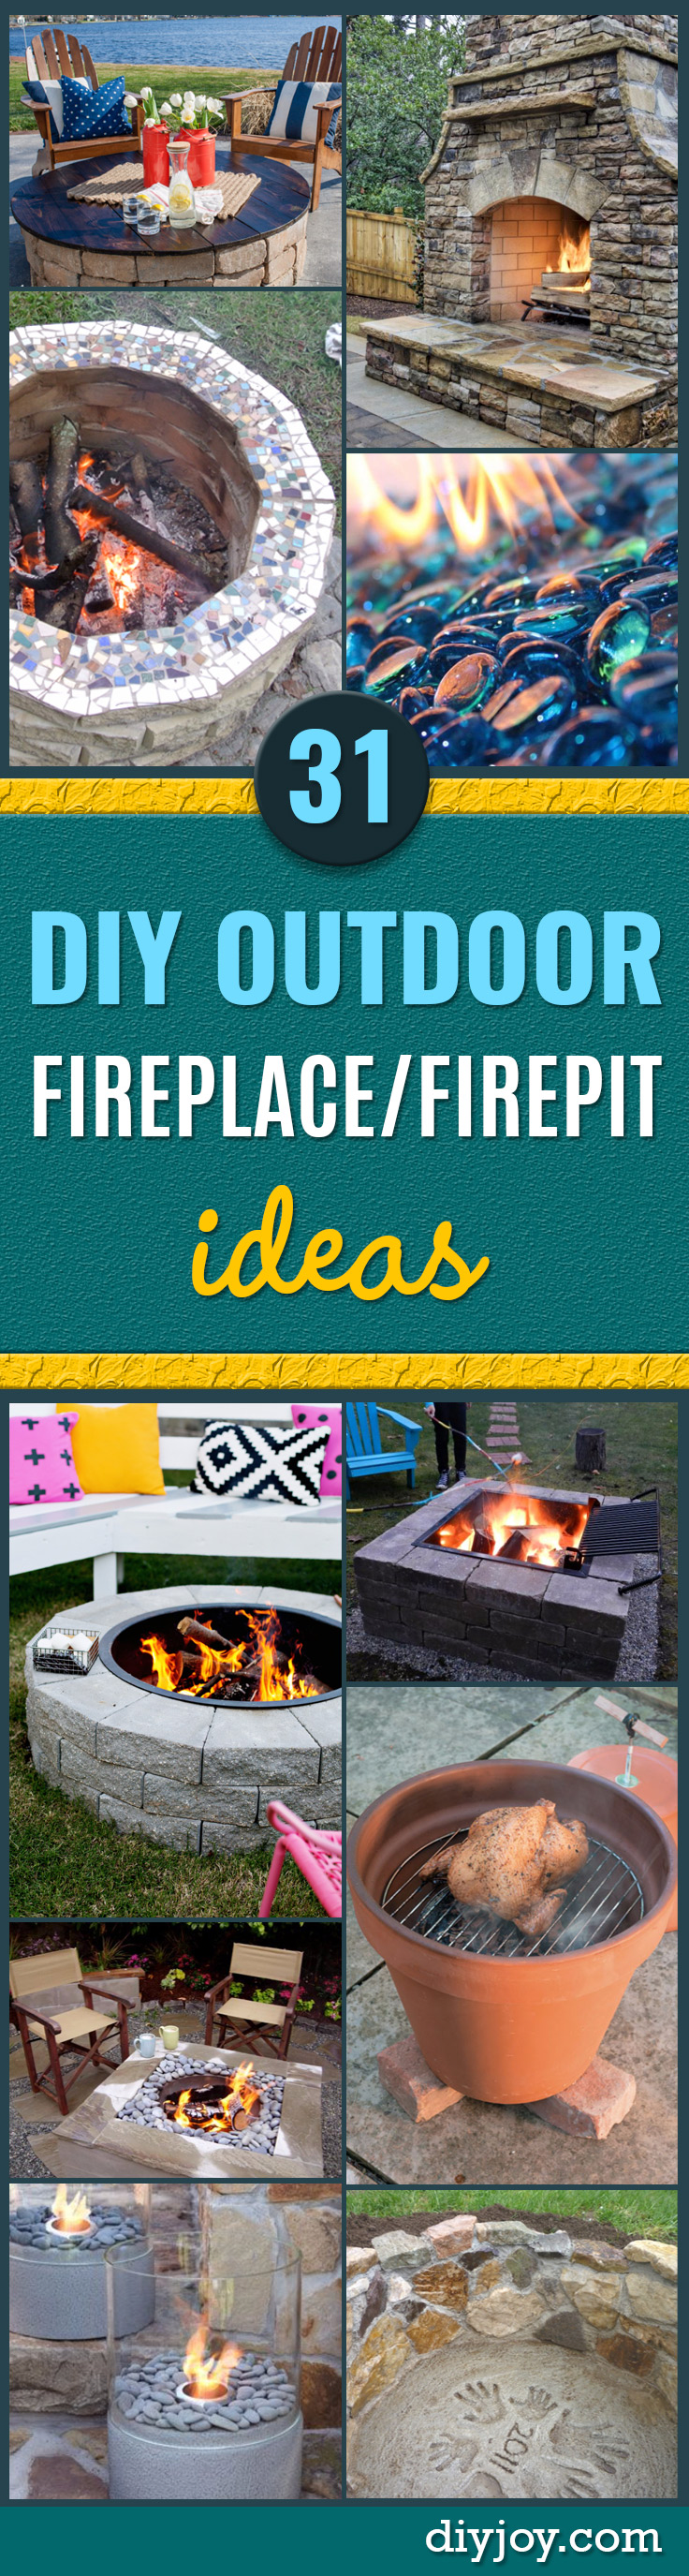 31 diy outdoor fireplace and firepit ideas diy fireplace ideas do it yourself firepit projects and fireplaces for your yard patio solutioingenieria Images